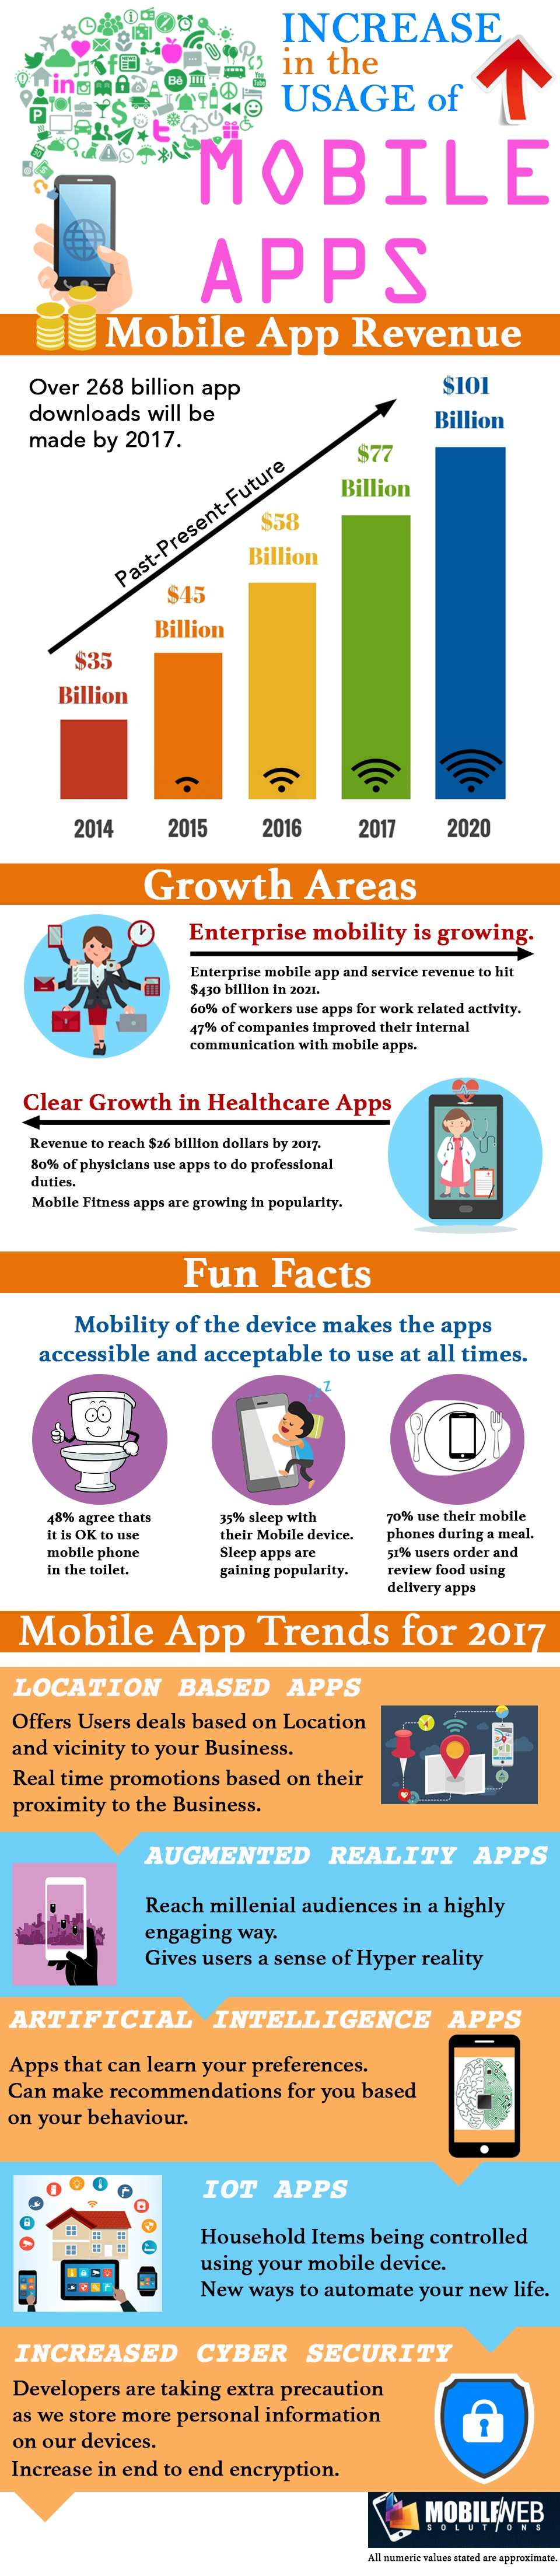 Creative Mobile App Development - Mobile And Web Solutions Infographic